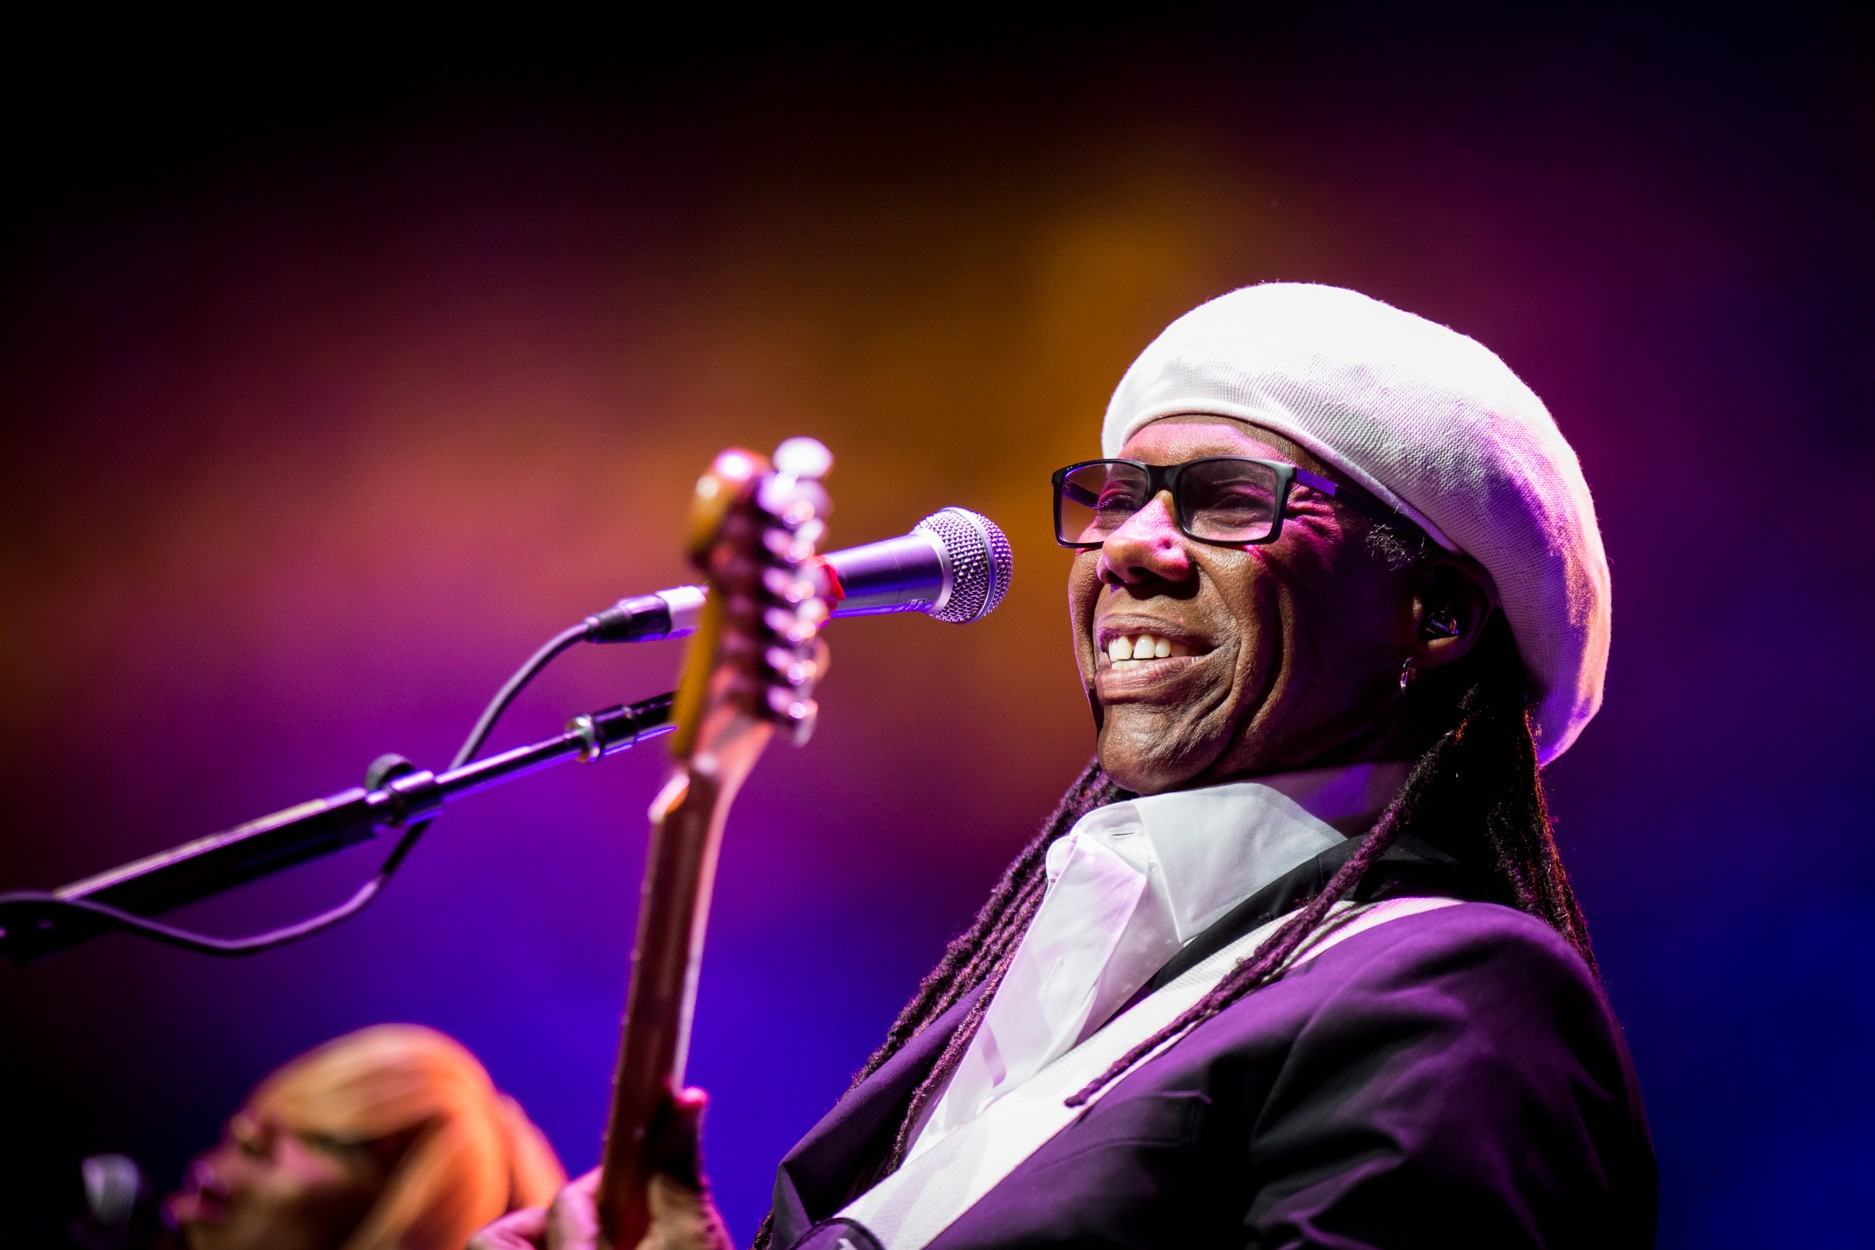 Nile Rodgers of Chic: Photo by Melissa Fossum